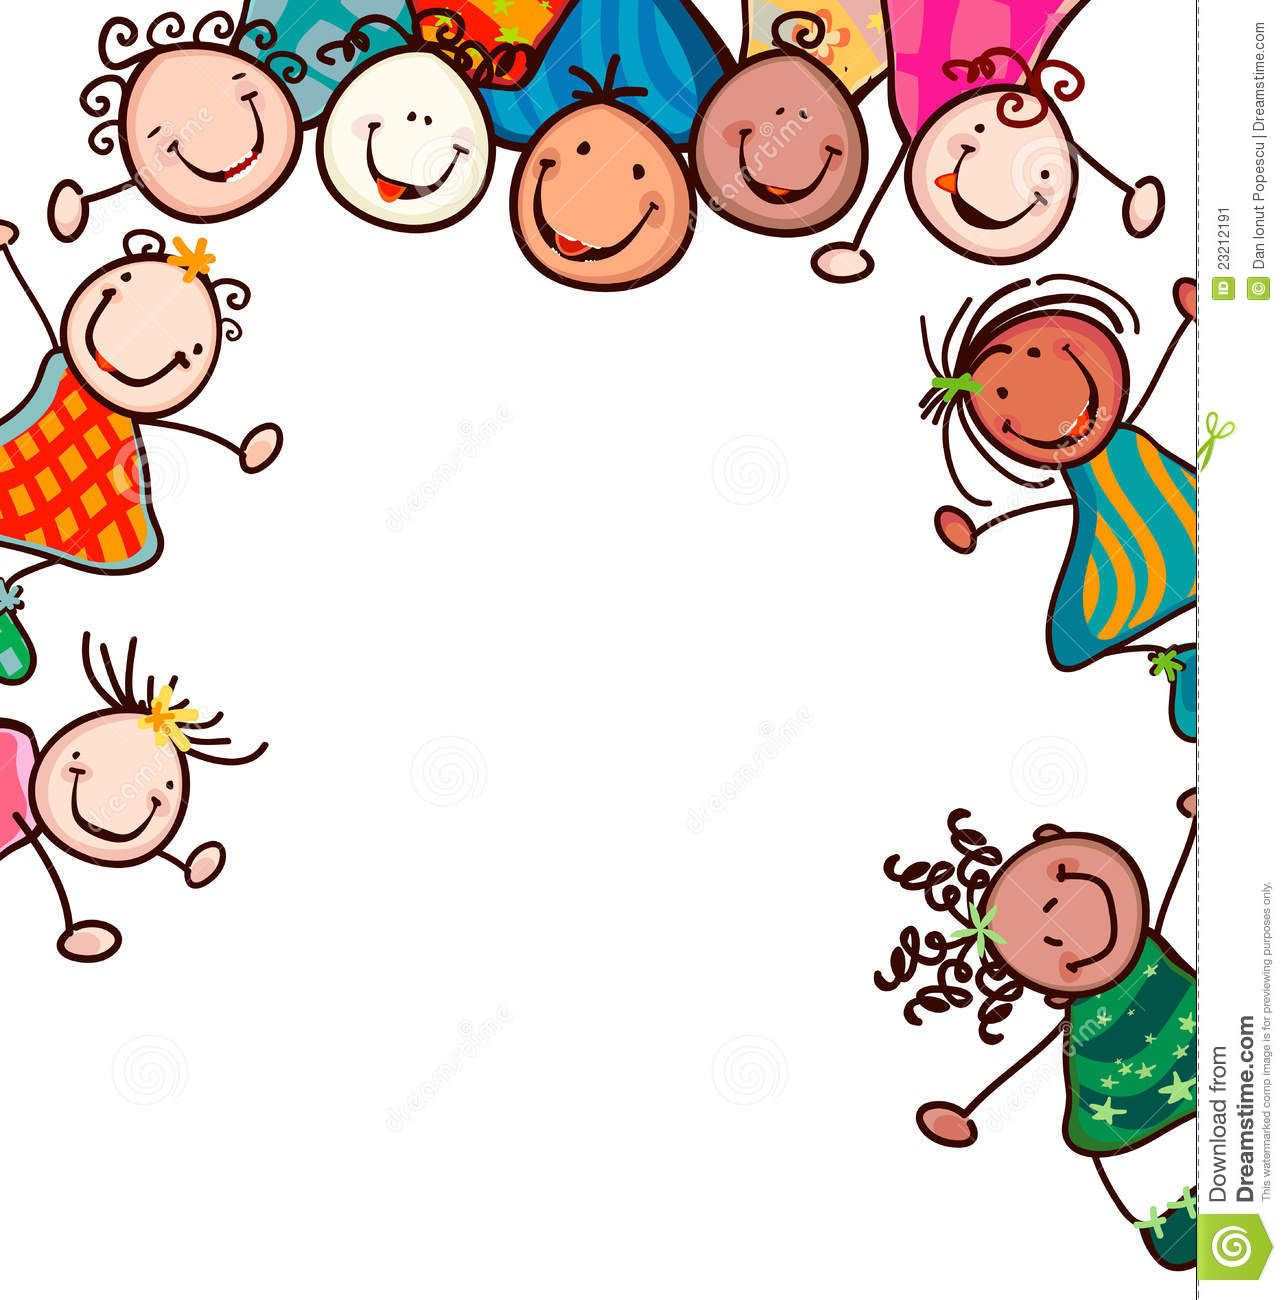 kids smiling stock image image 23212191 clip art pinterest rh pinterest com Happy People Clip Art happy kid clipart